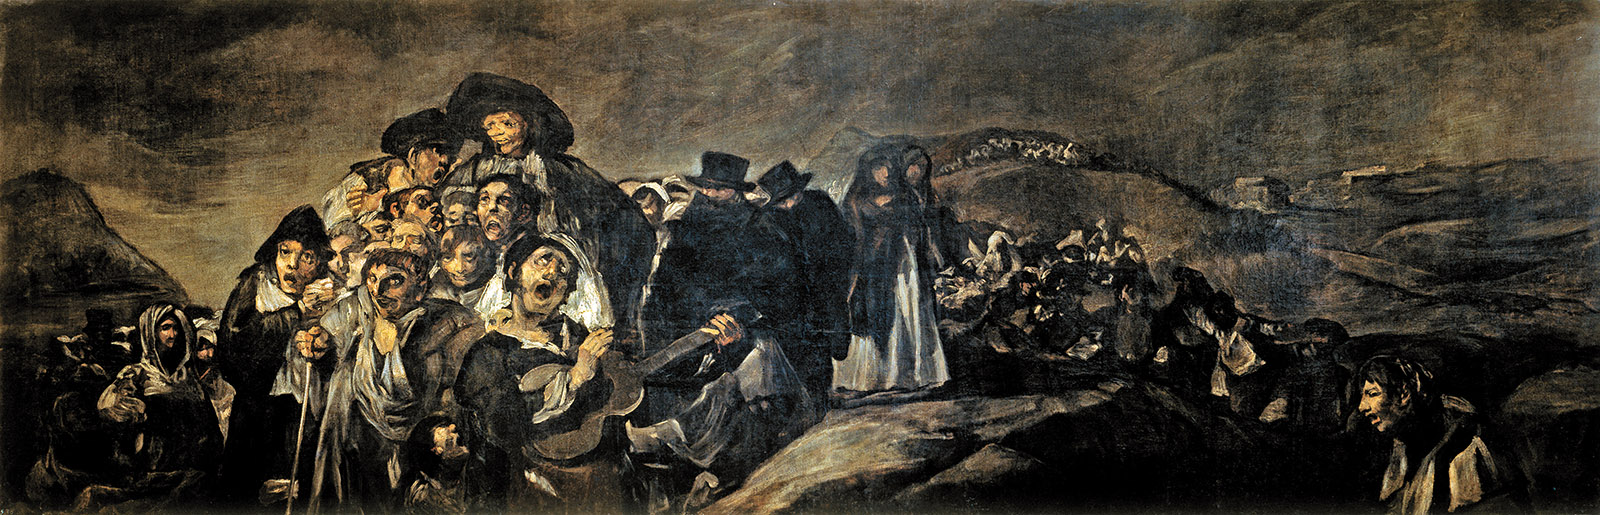 The Pilgrimage to San Isidro; painting by Francisco Goya